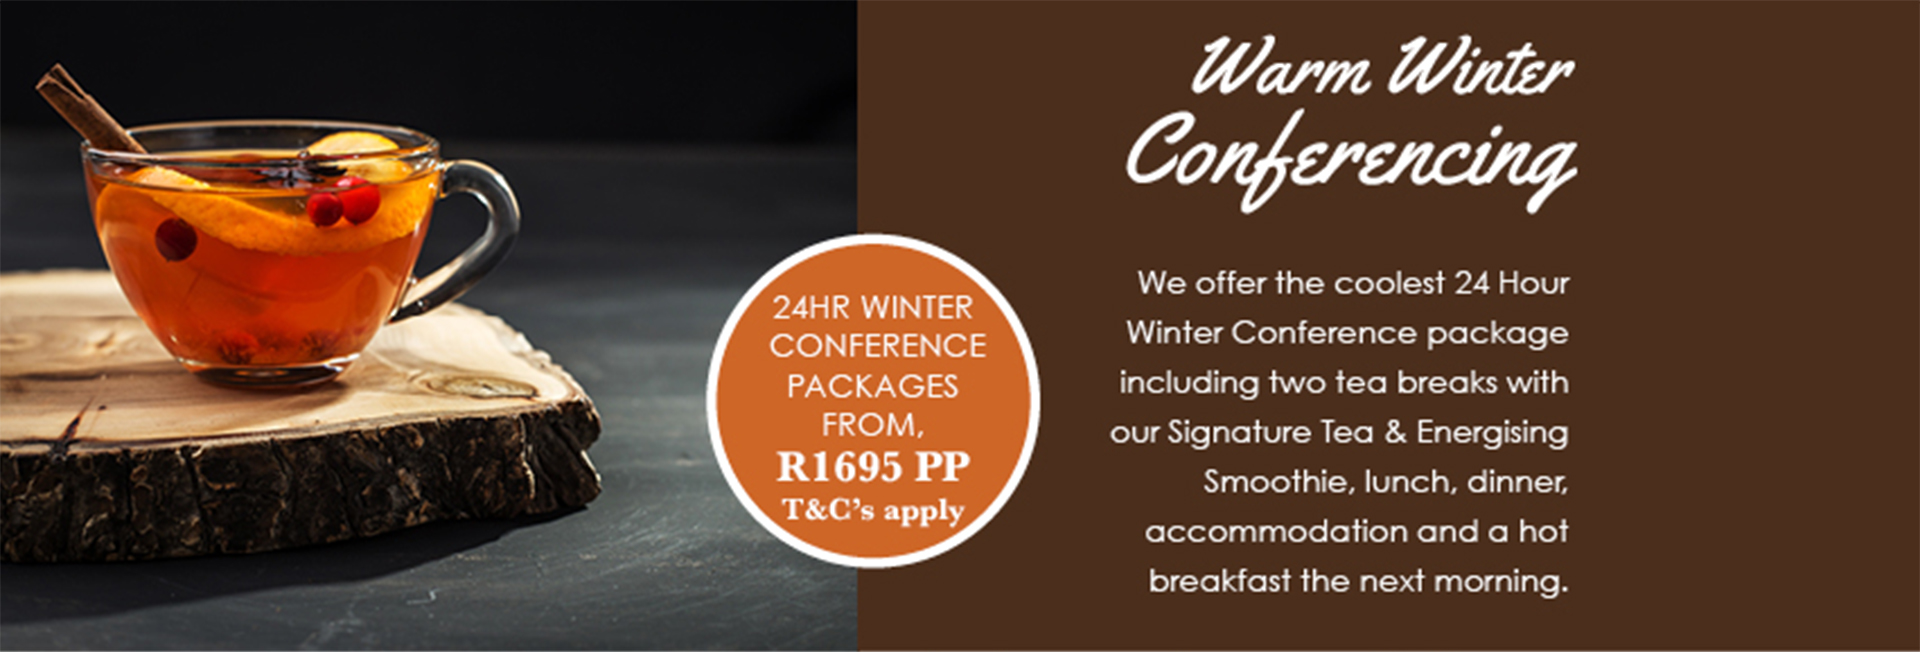 24 Hour Winter Conference